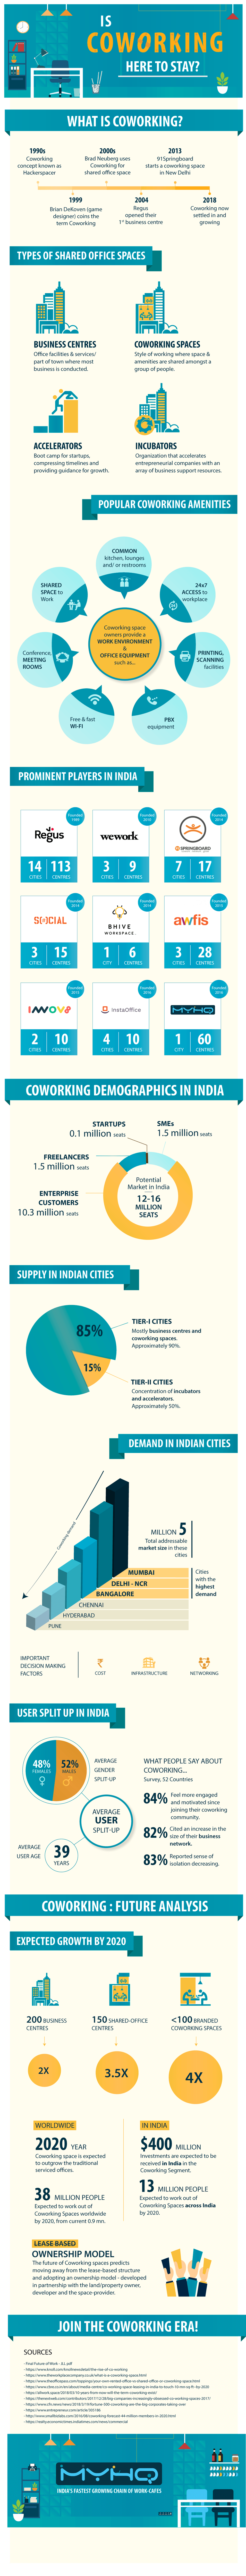 growth-of-coworking-spaces-india